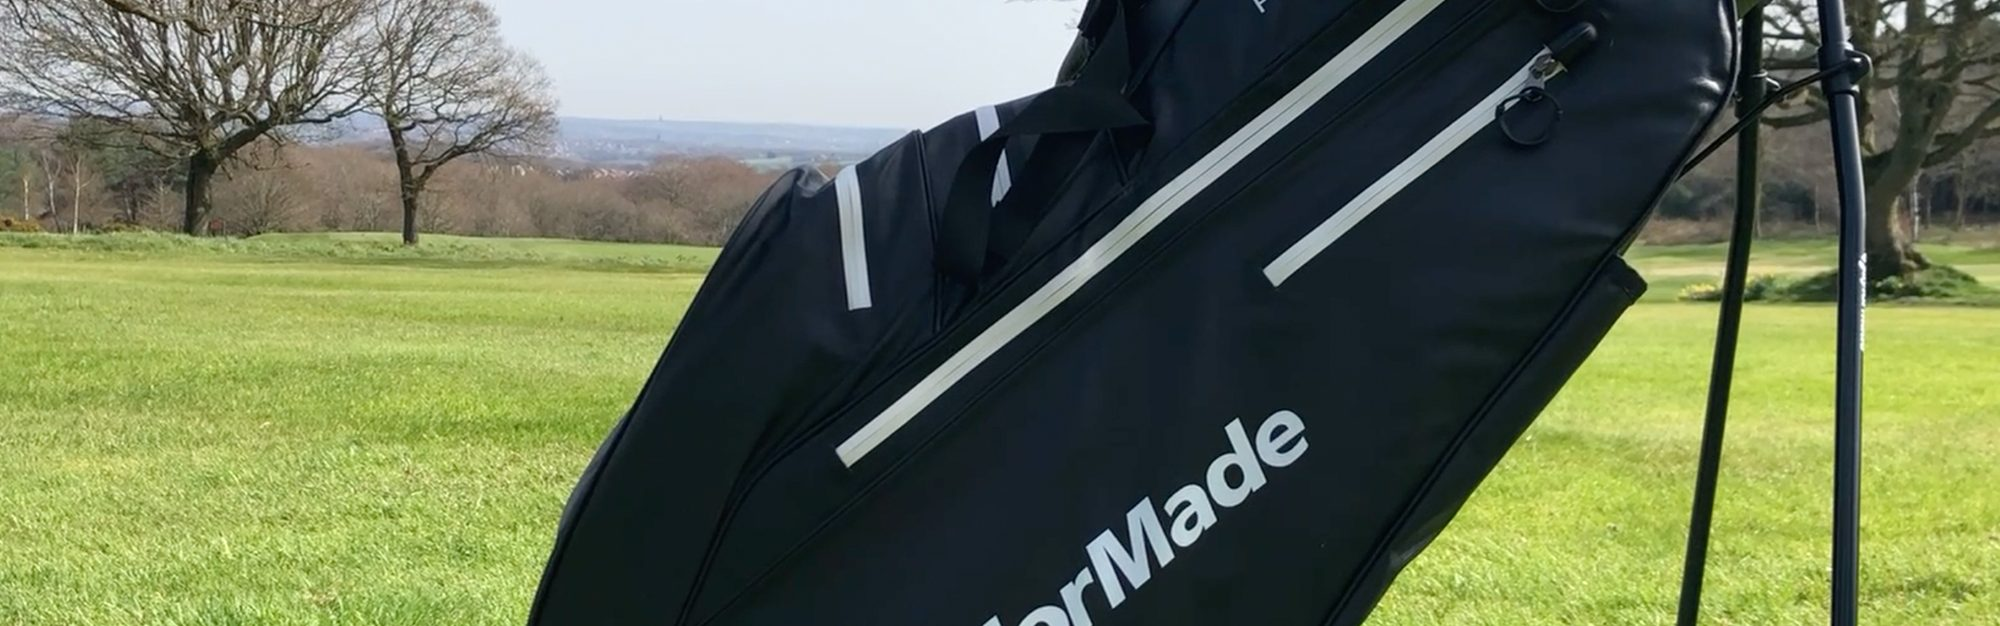 TaylorMade golf bag review: We put their latest stand and trolley bags to the test